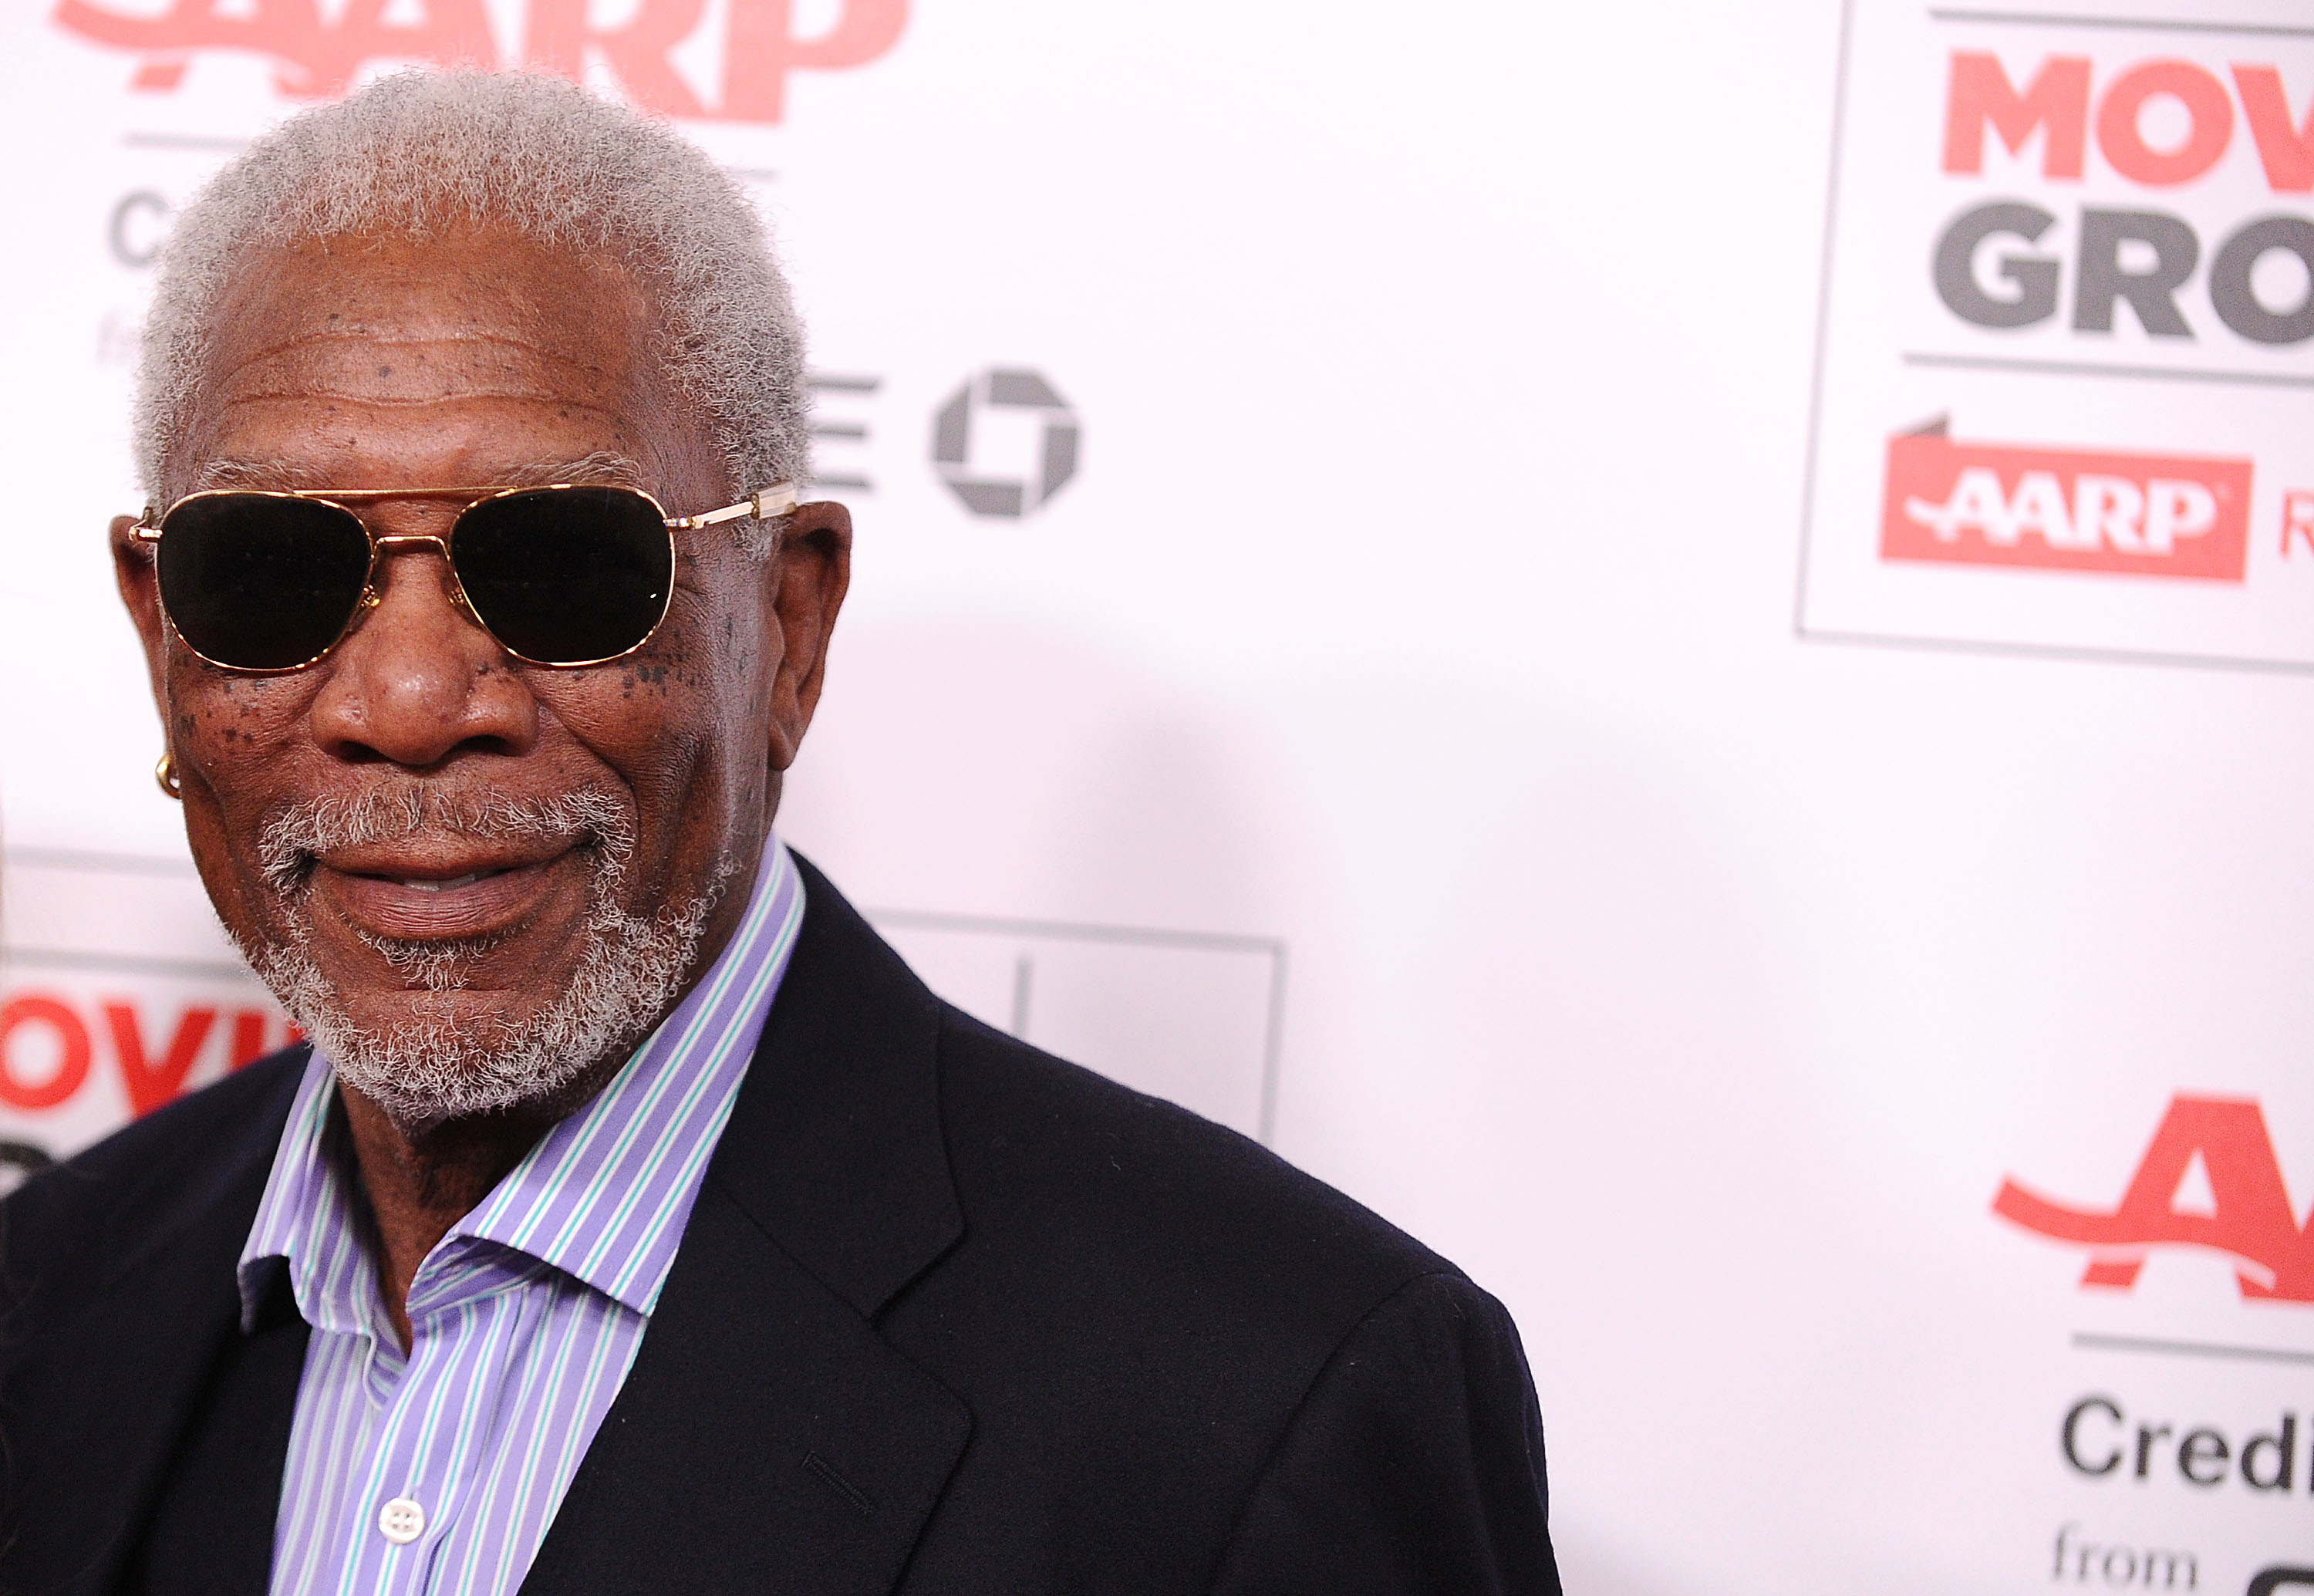 BEVERLY HILLS, CA - FEBRUARY 08:  Actor Morgan Freeman attends the 15th annual Movies For Grownups Awards at the Beverly Wils